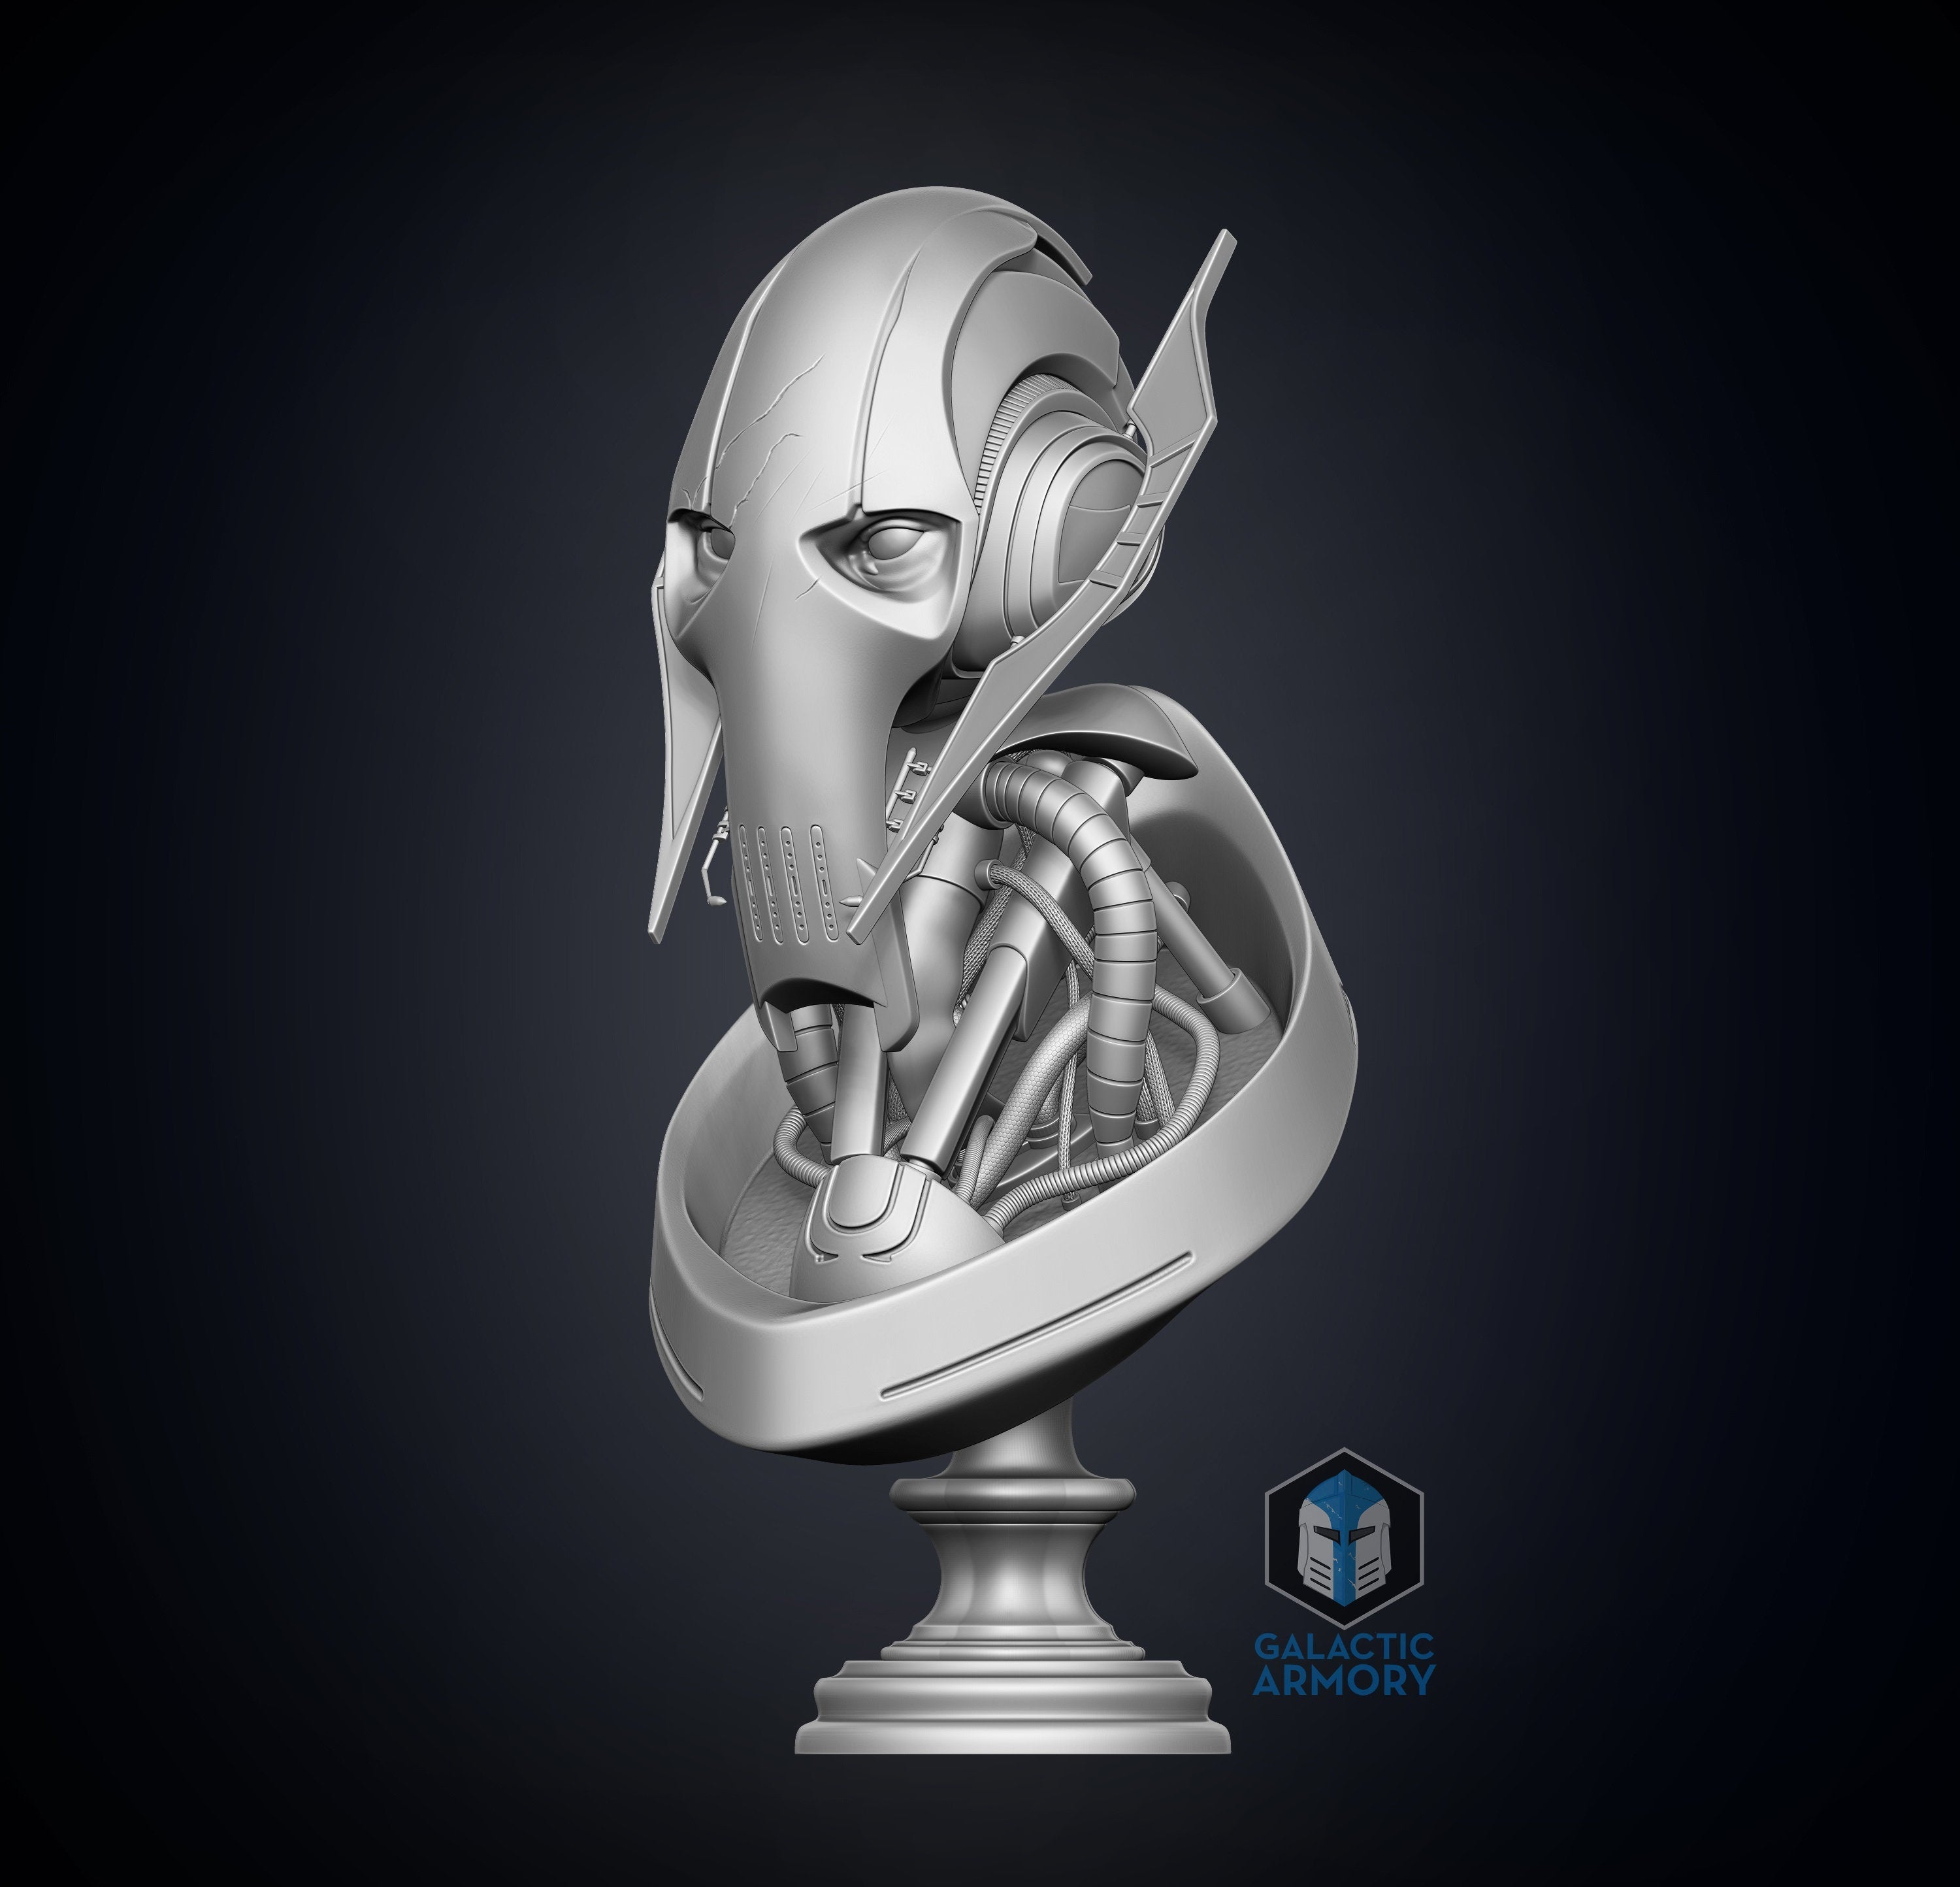 General Grievous Bust - 3D Print Files - The Galactic Armory